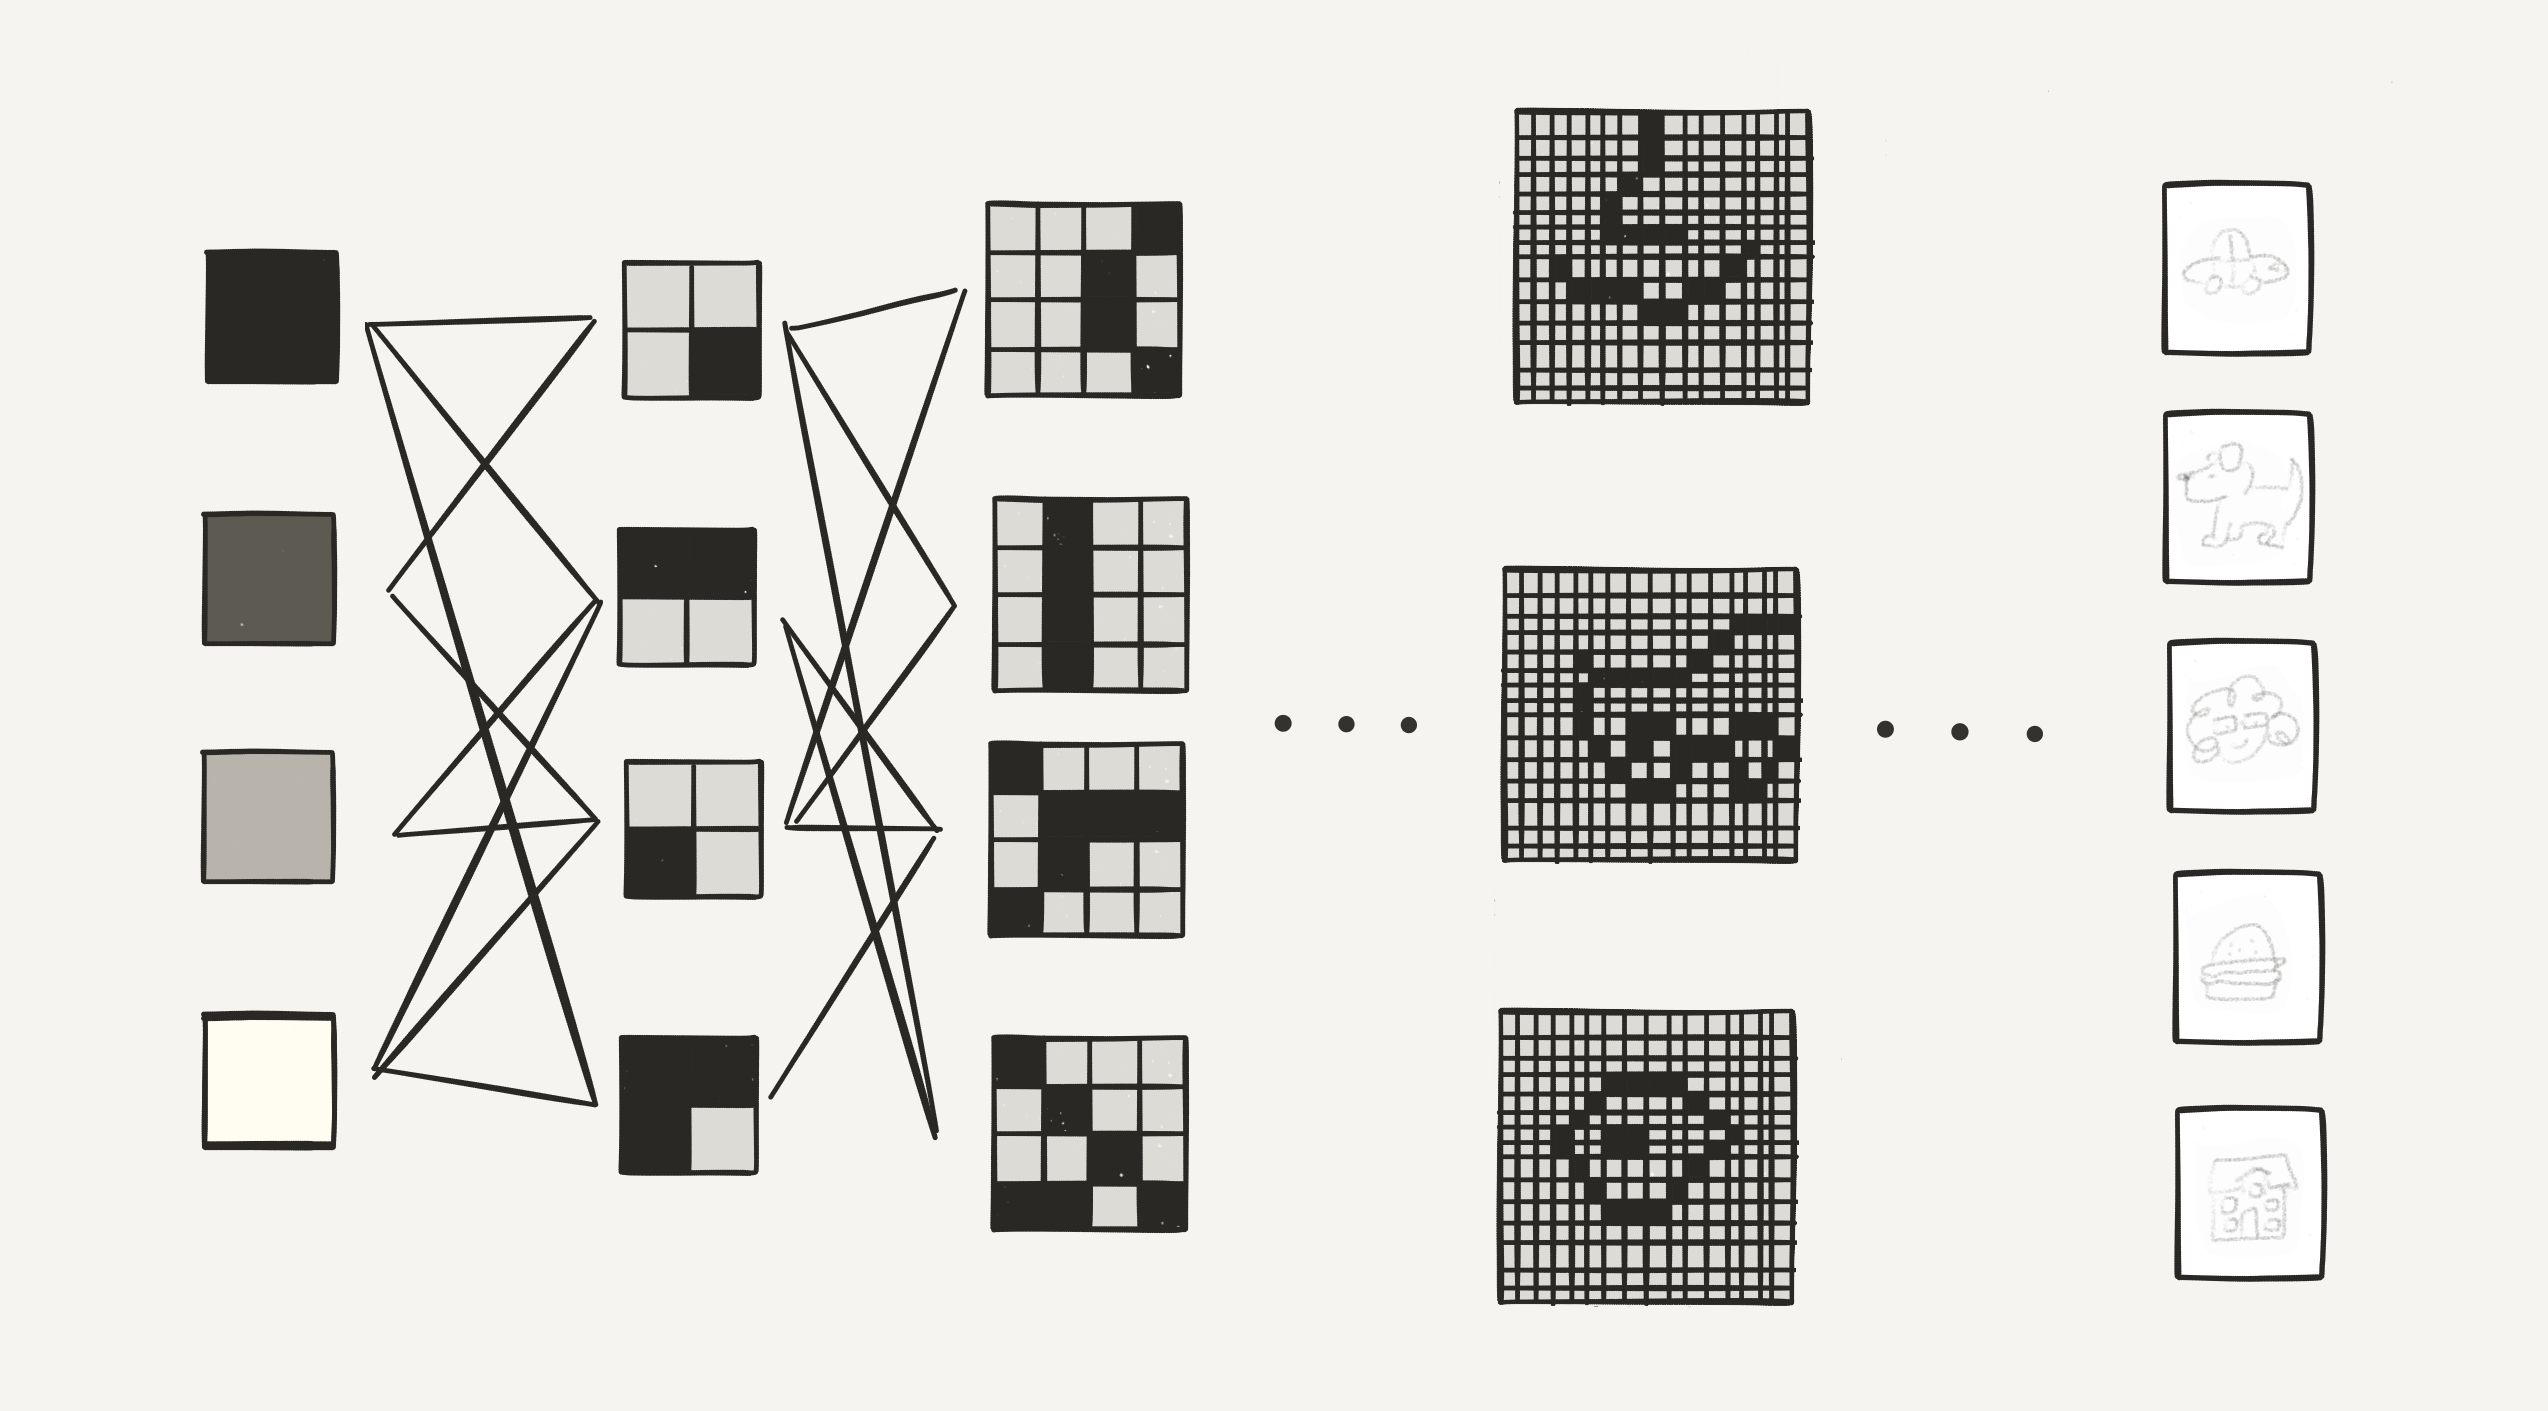 Neural networks: The 1 minute guide